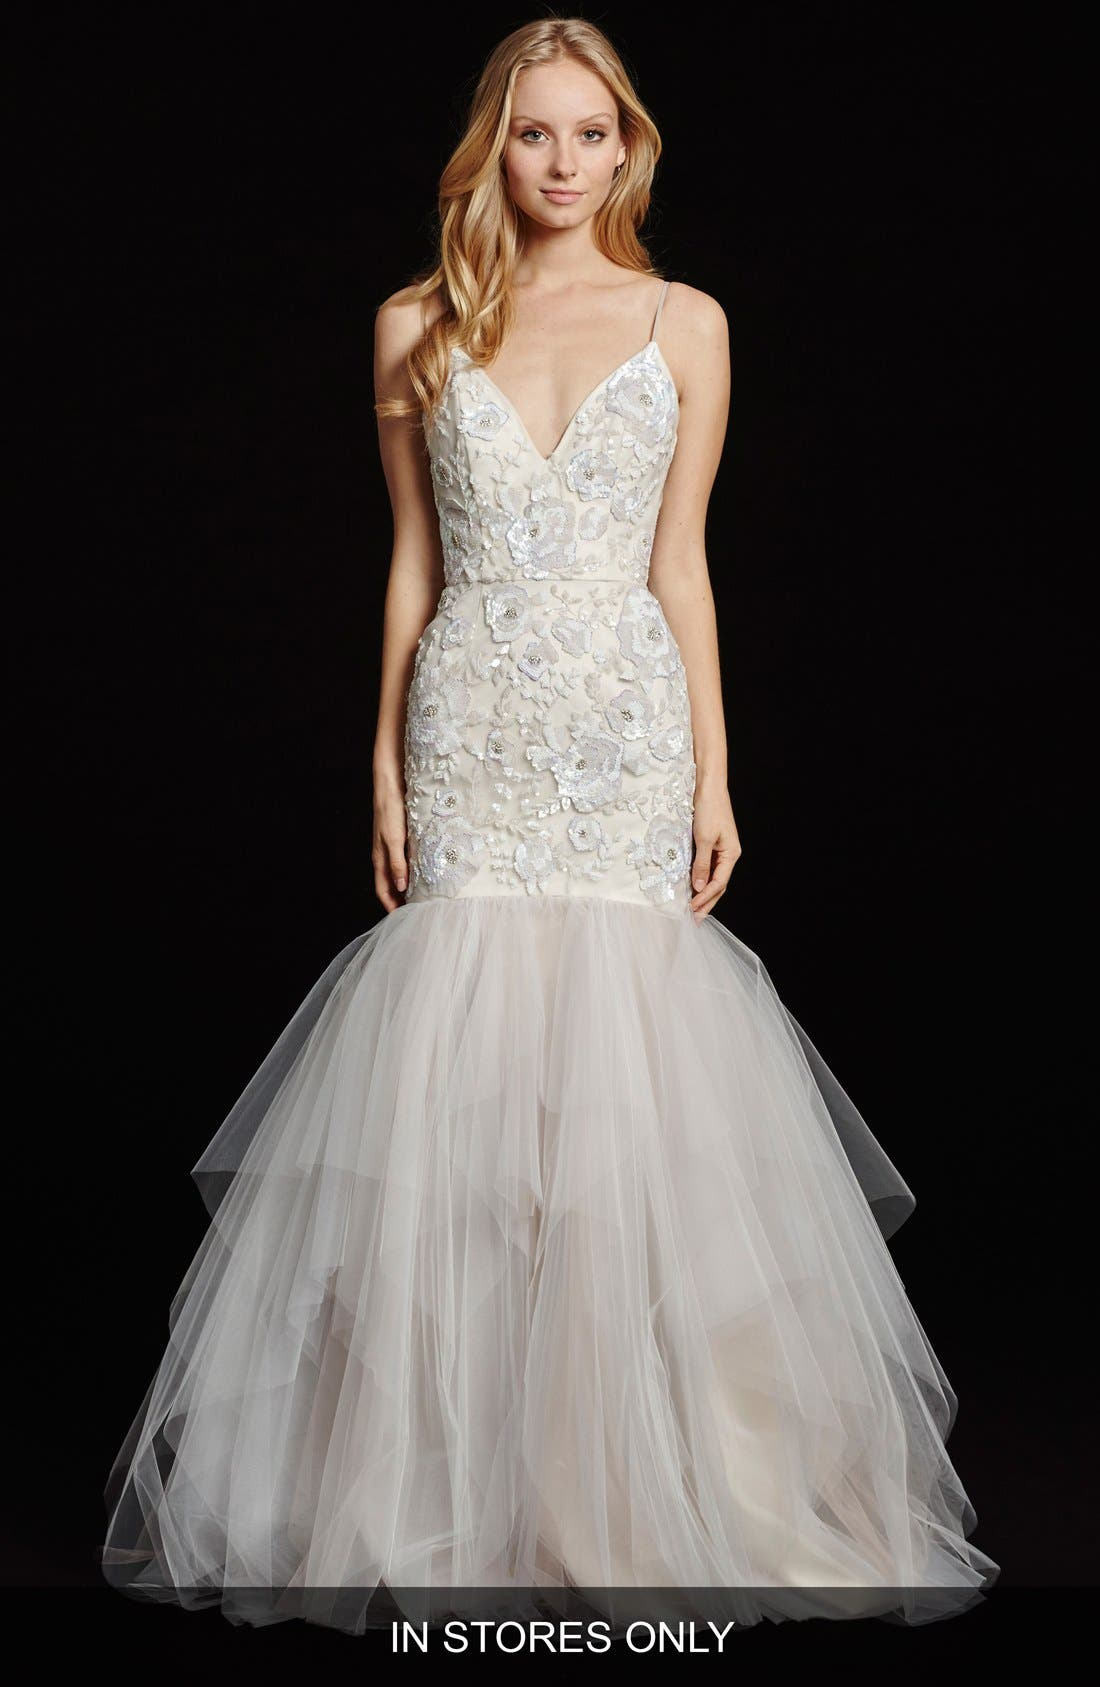 HAYLEY PAIGE 'Honor' Embellished V-Neck Mermaid Gown